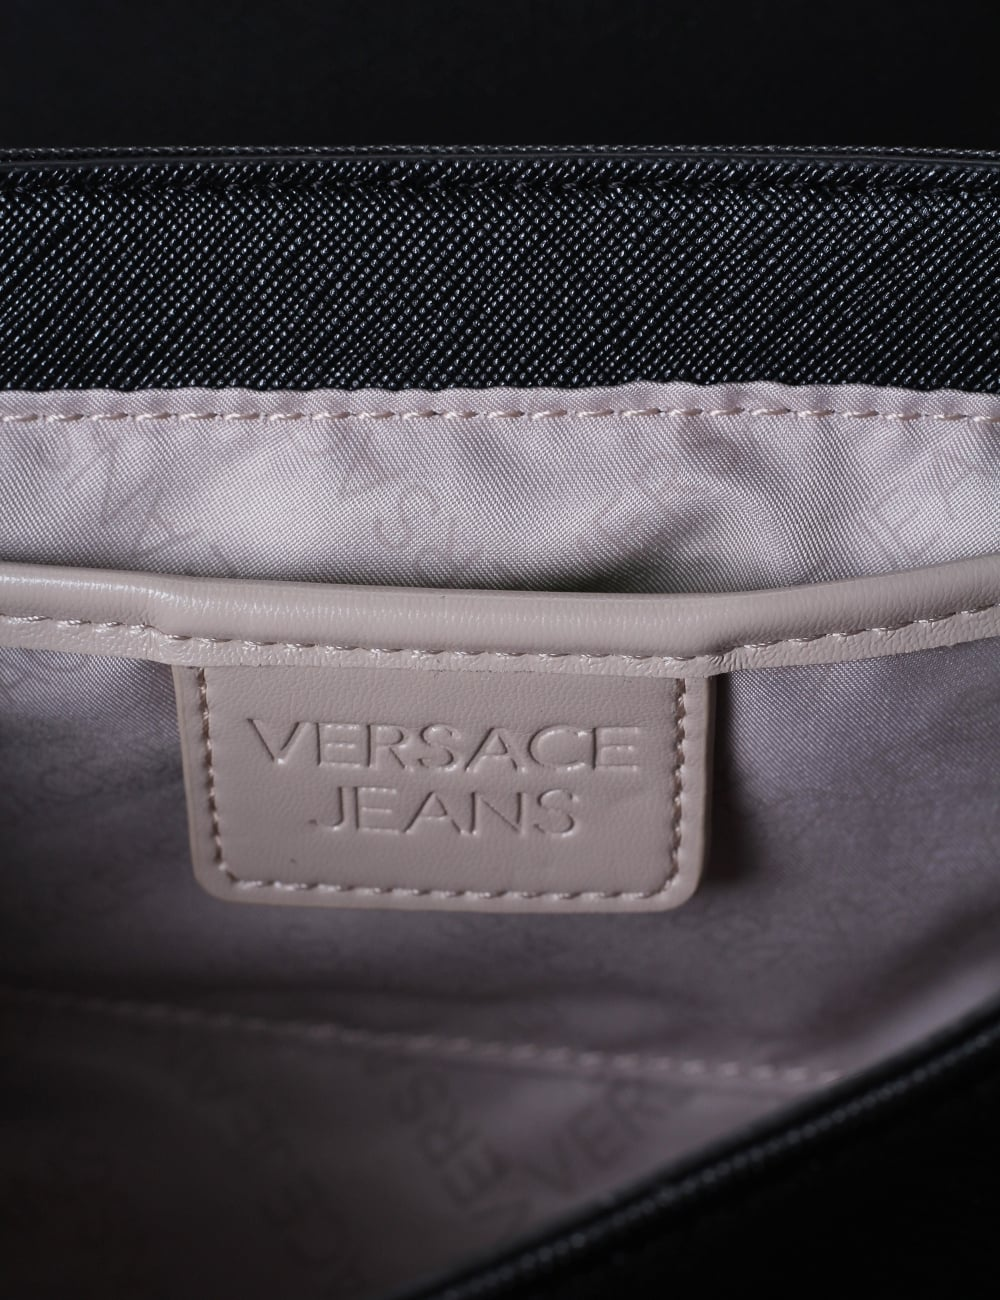 7a50f102faa6 Versace Jeans Embossed Logo Women s Chain Strap Bag